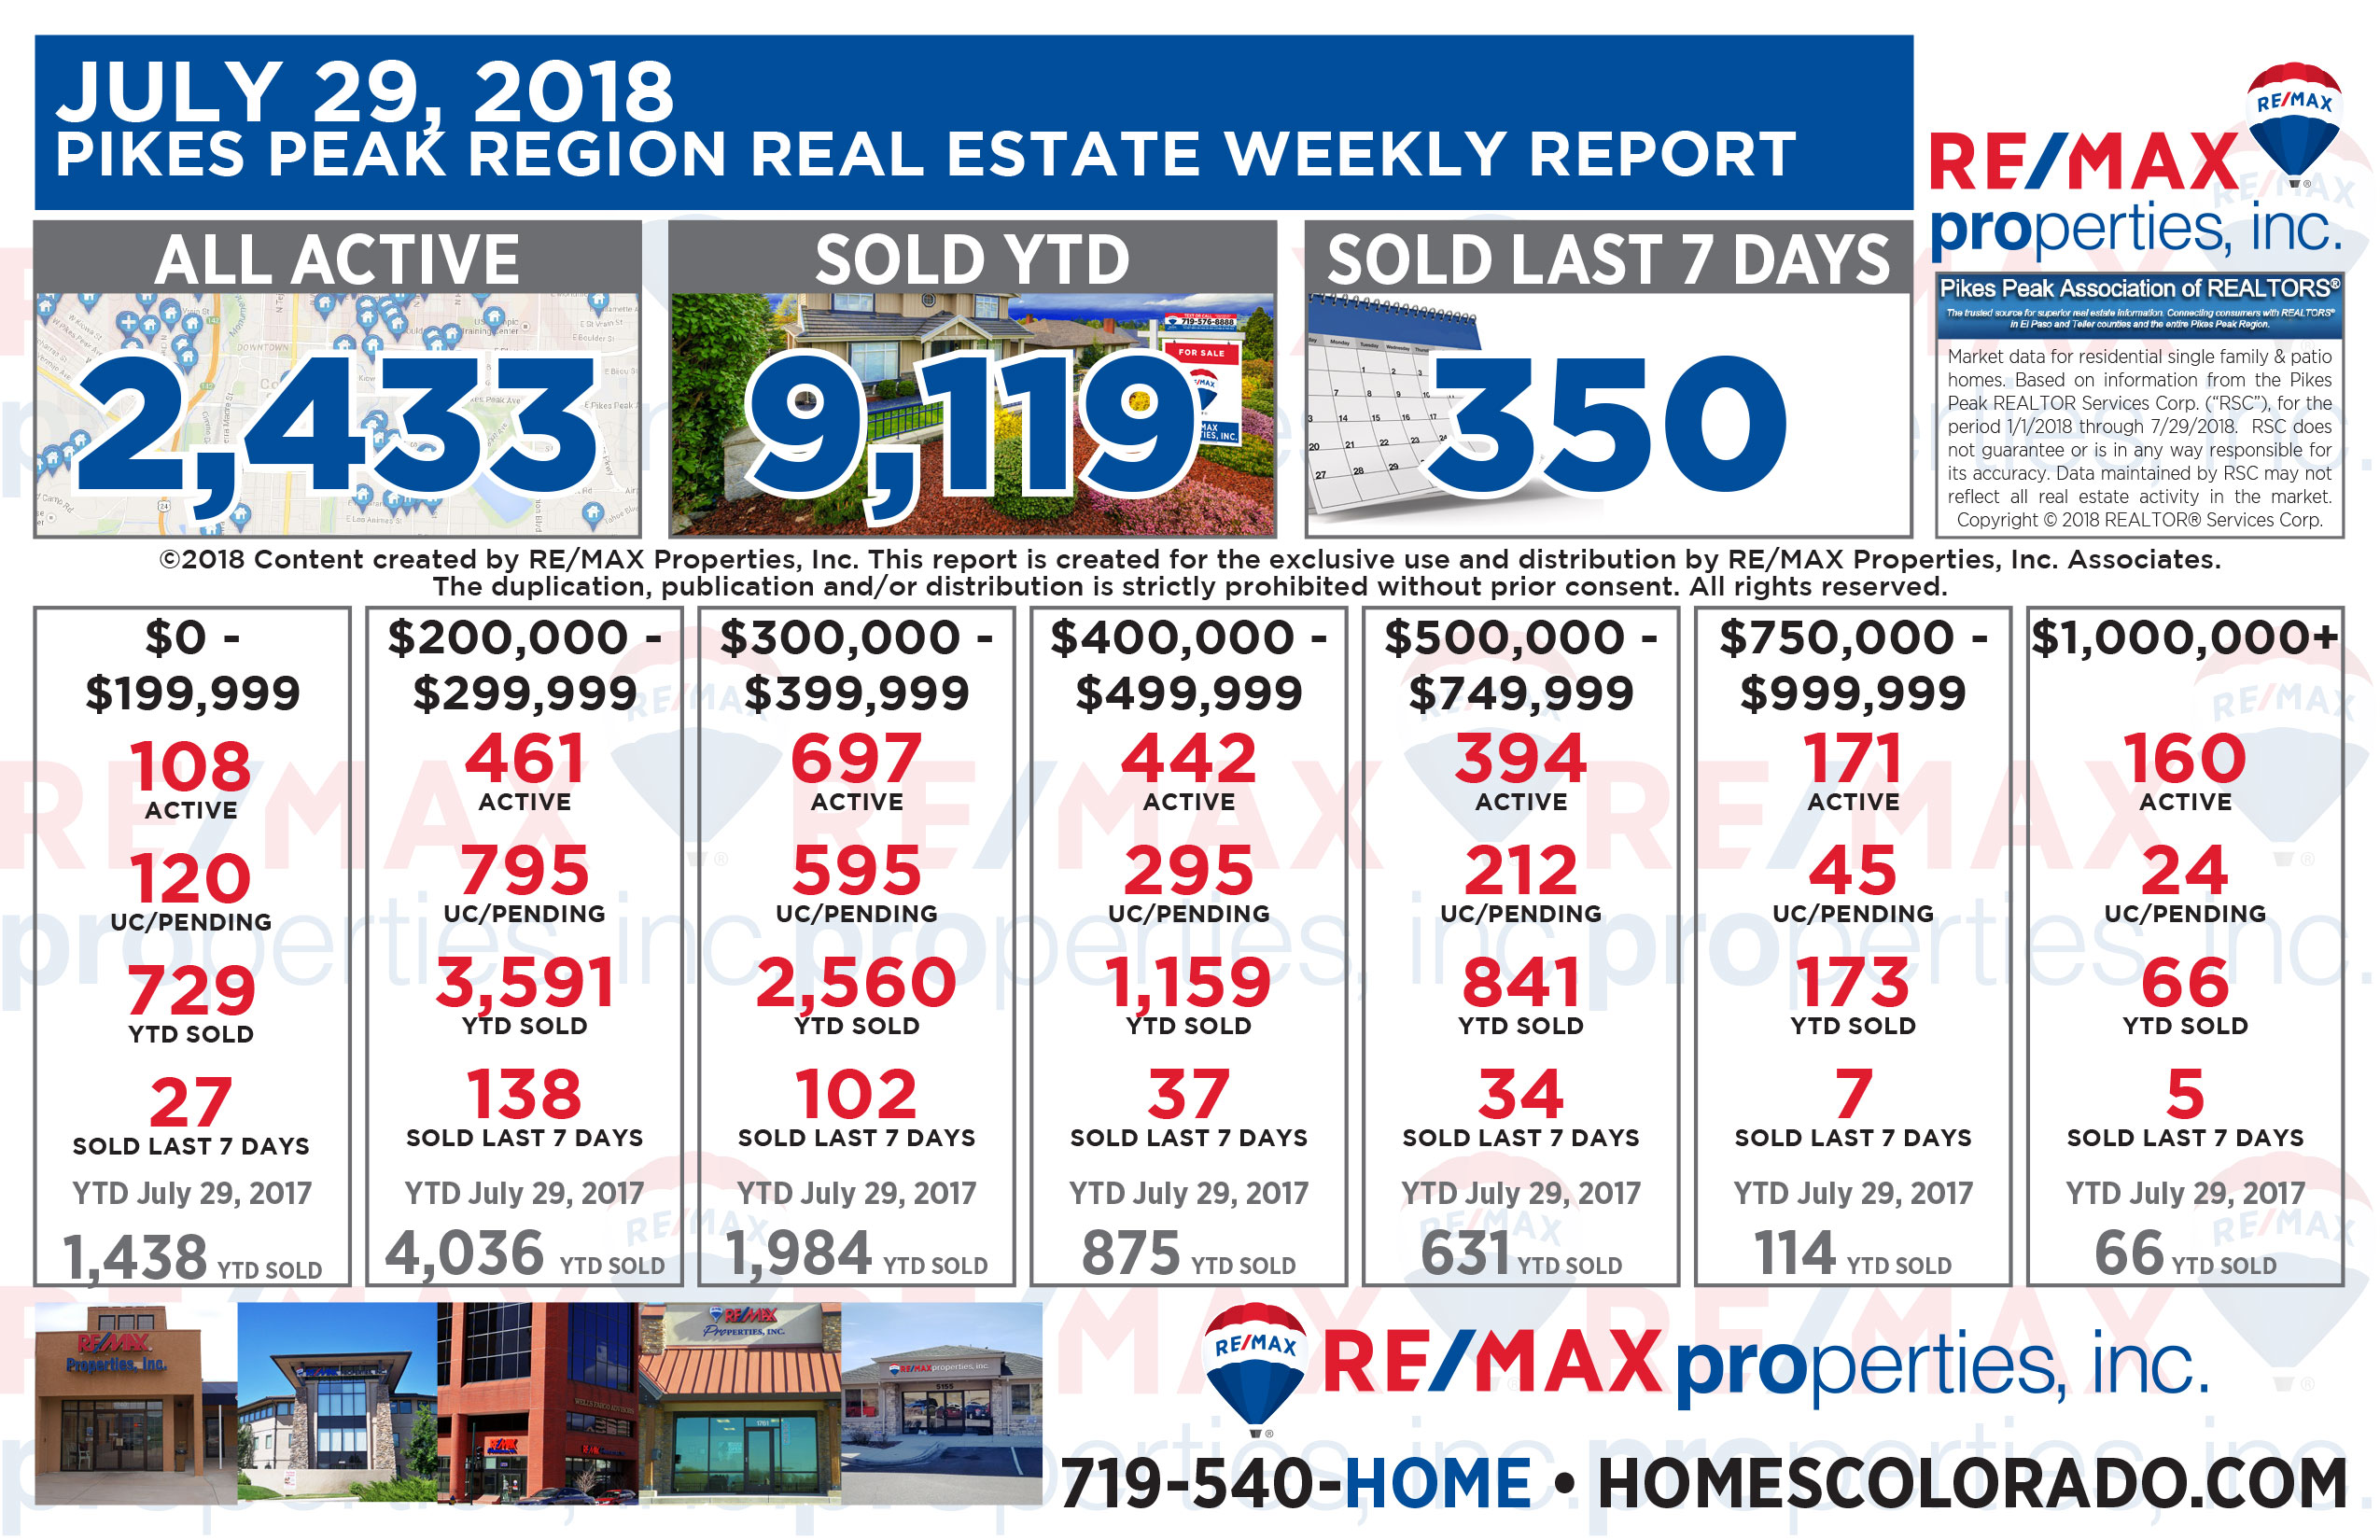 Colorado Springs Real Estate Market Weekly Update - July 29, 2018